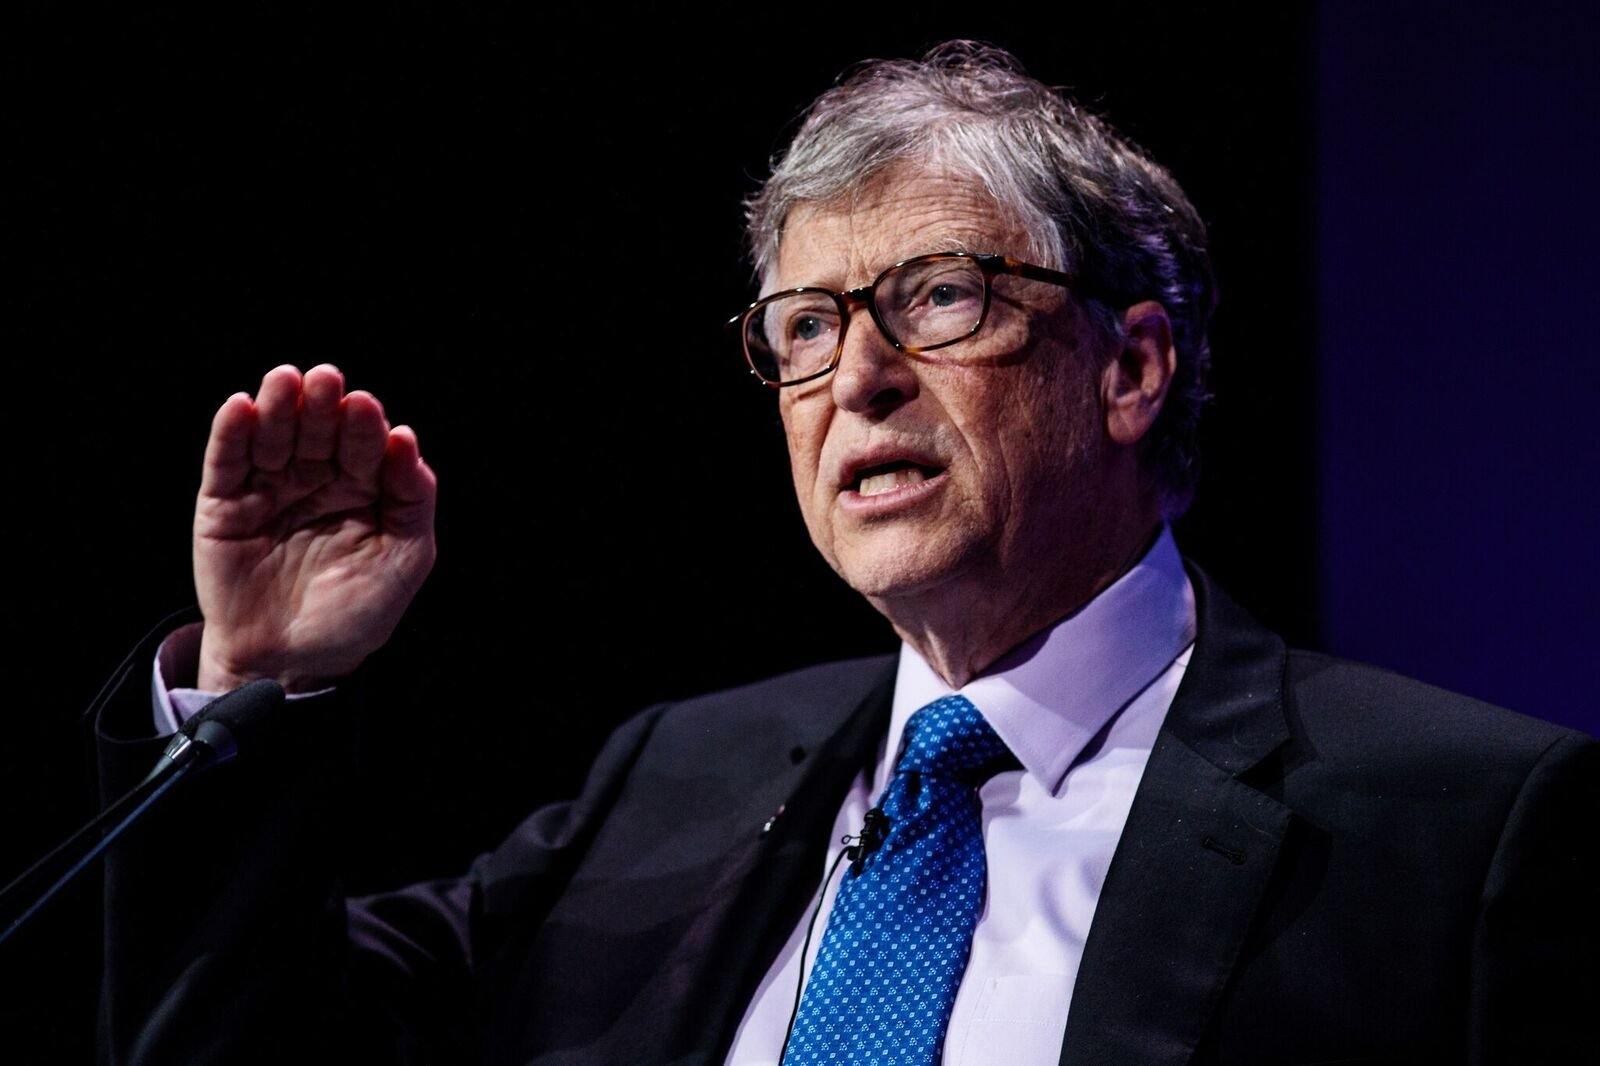 Bill Gates makes a speech at the Malaria Summit at 8 Northumberland Avenue on April 18, 2018 | Photo: Getty Images